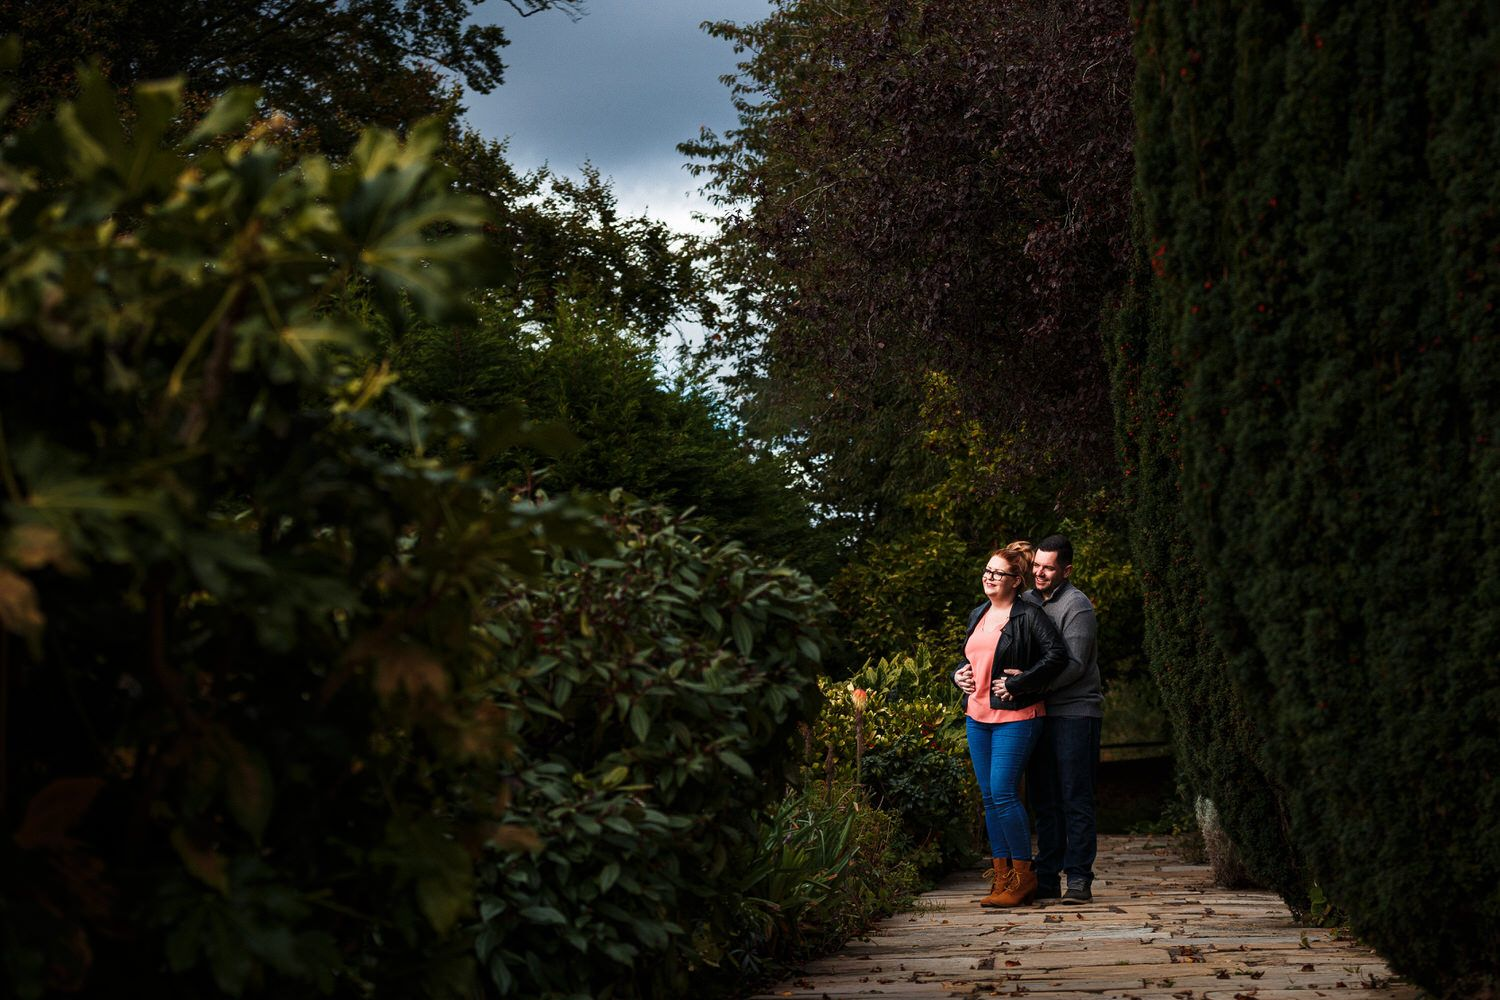 Engagement-Photoshoot-Buckinghamshire-Locations